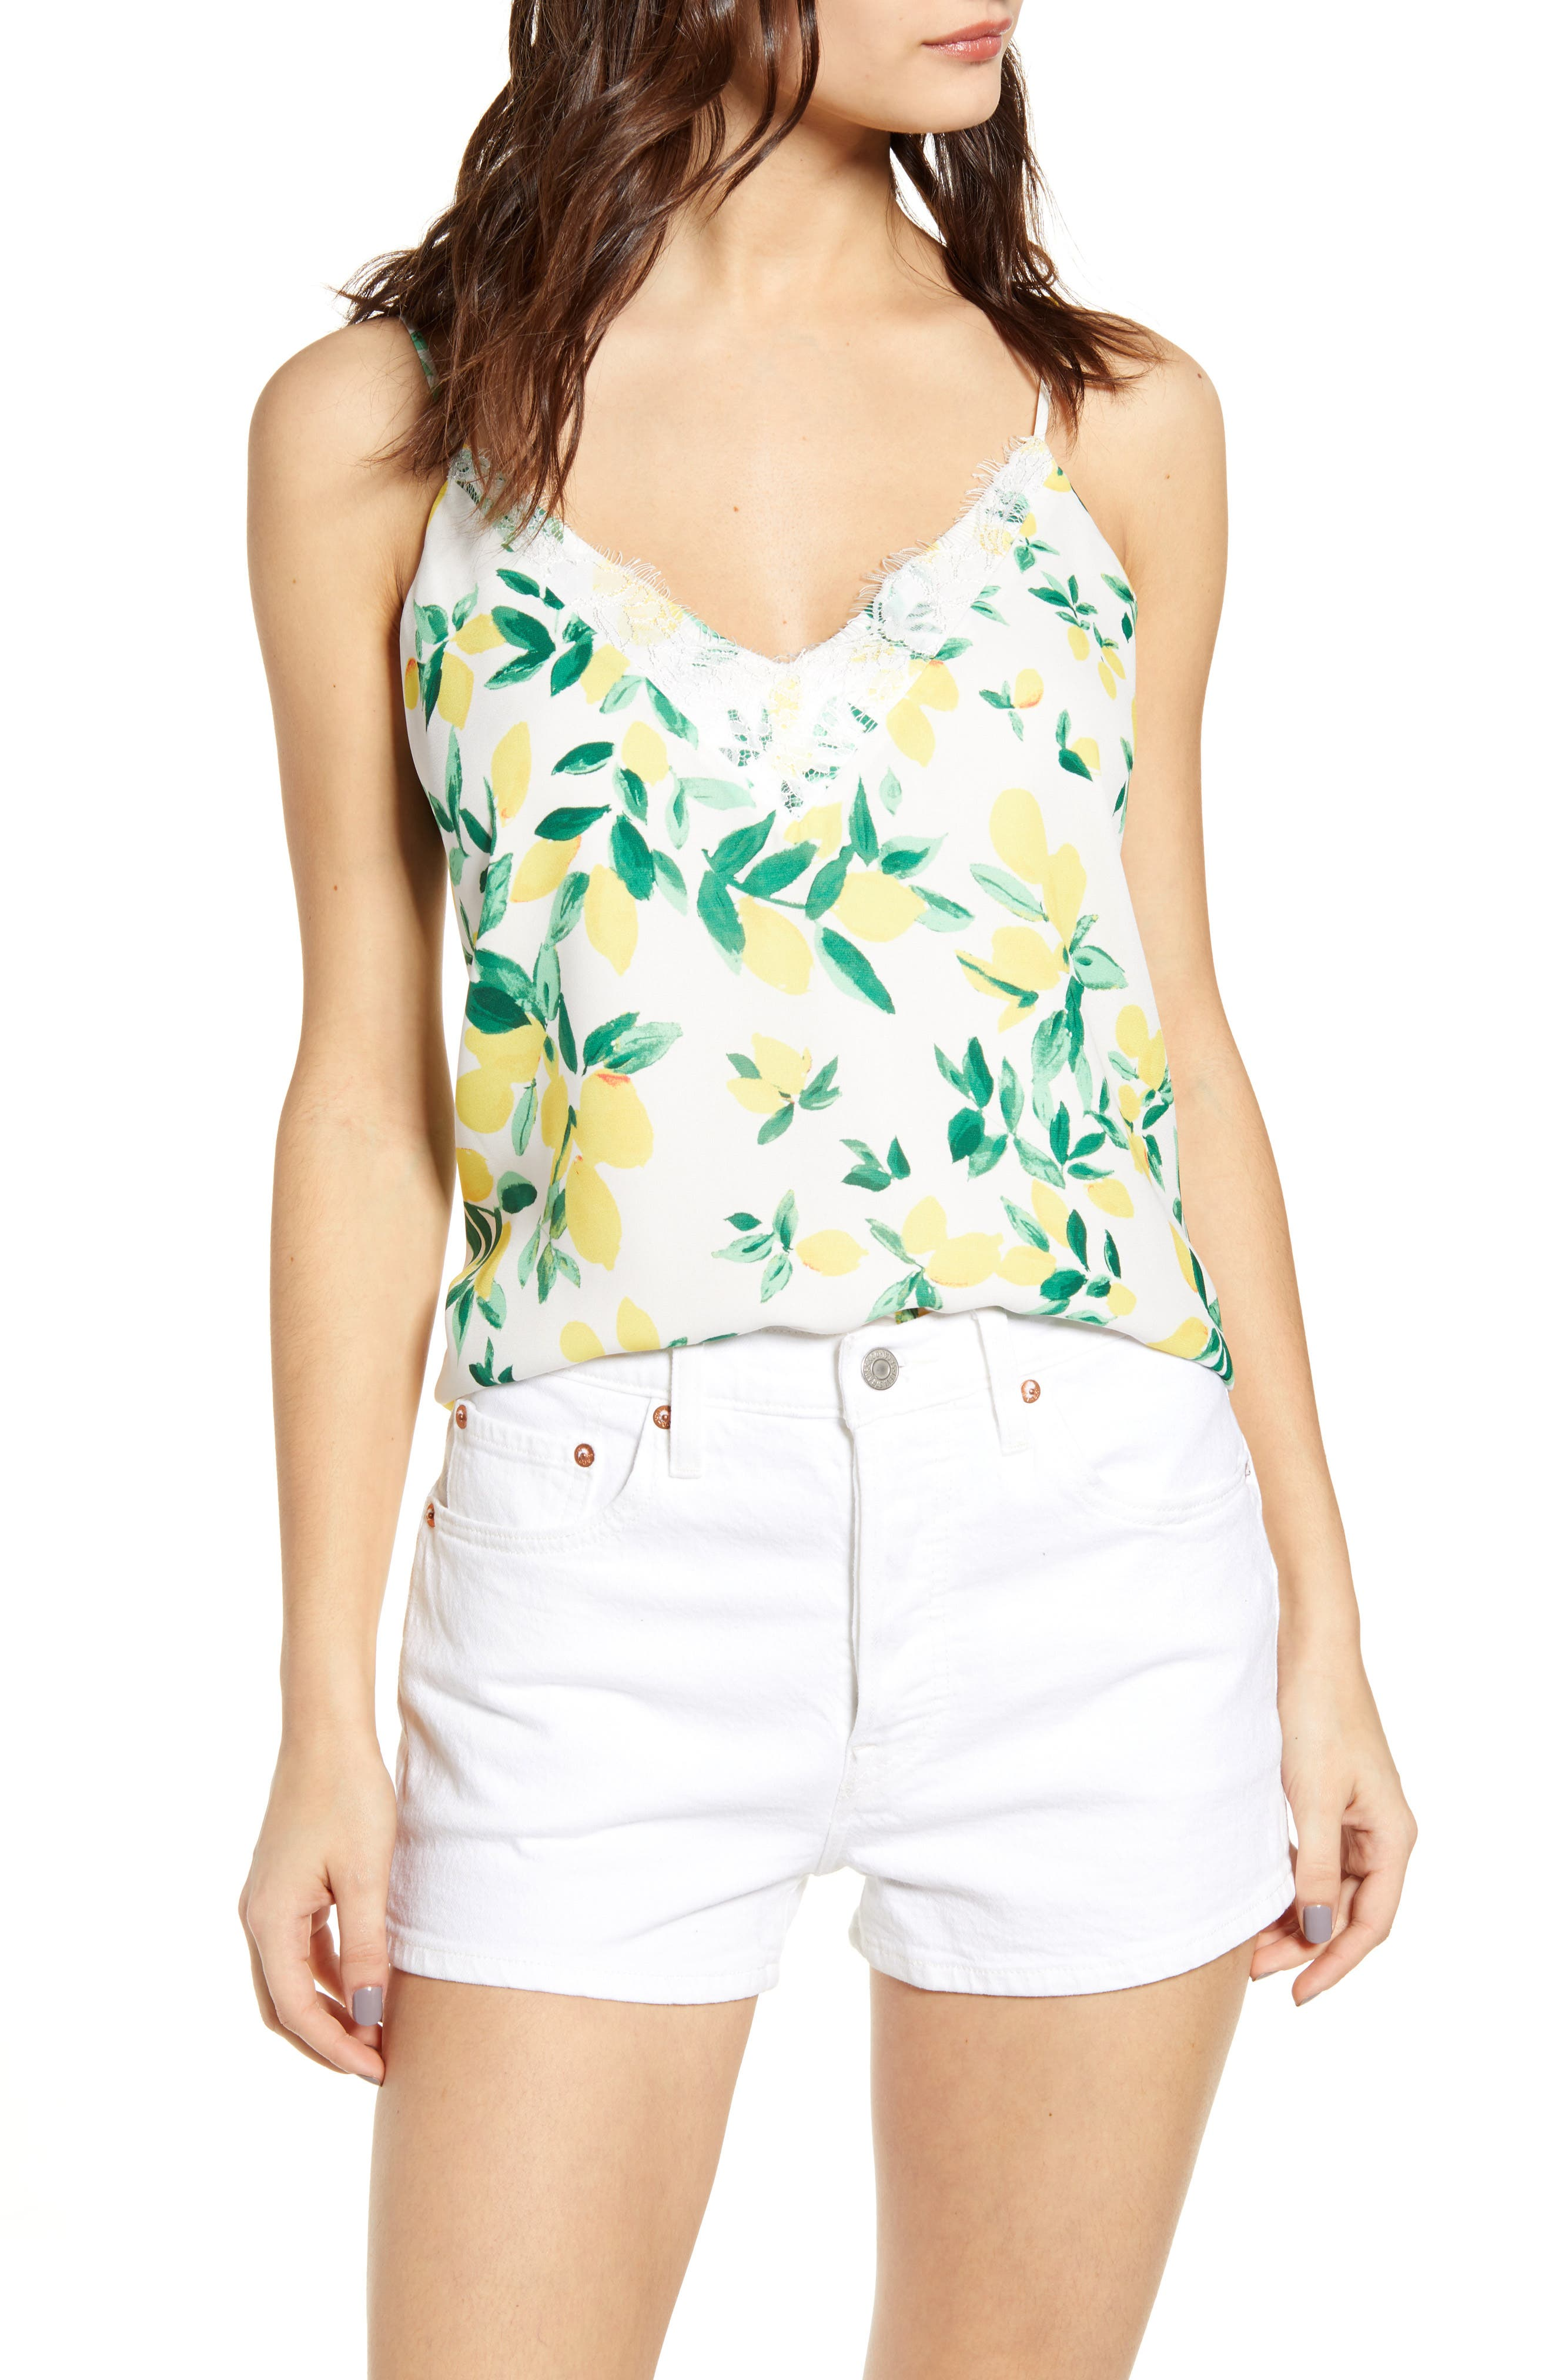 Socialite Lace Trim Camisole Top, Yellow